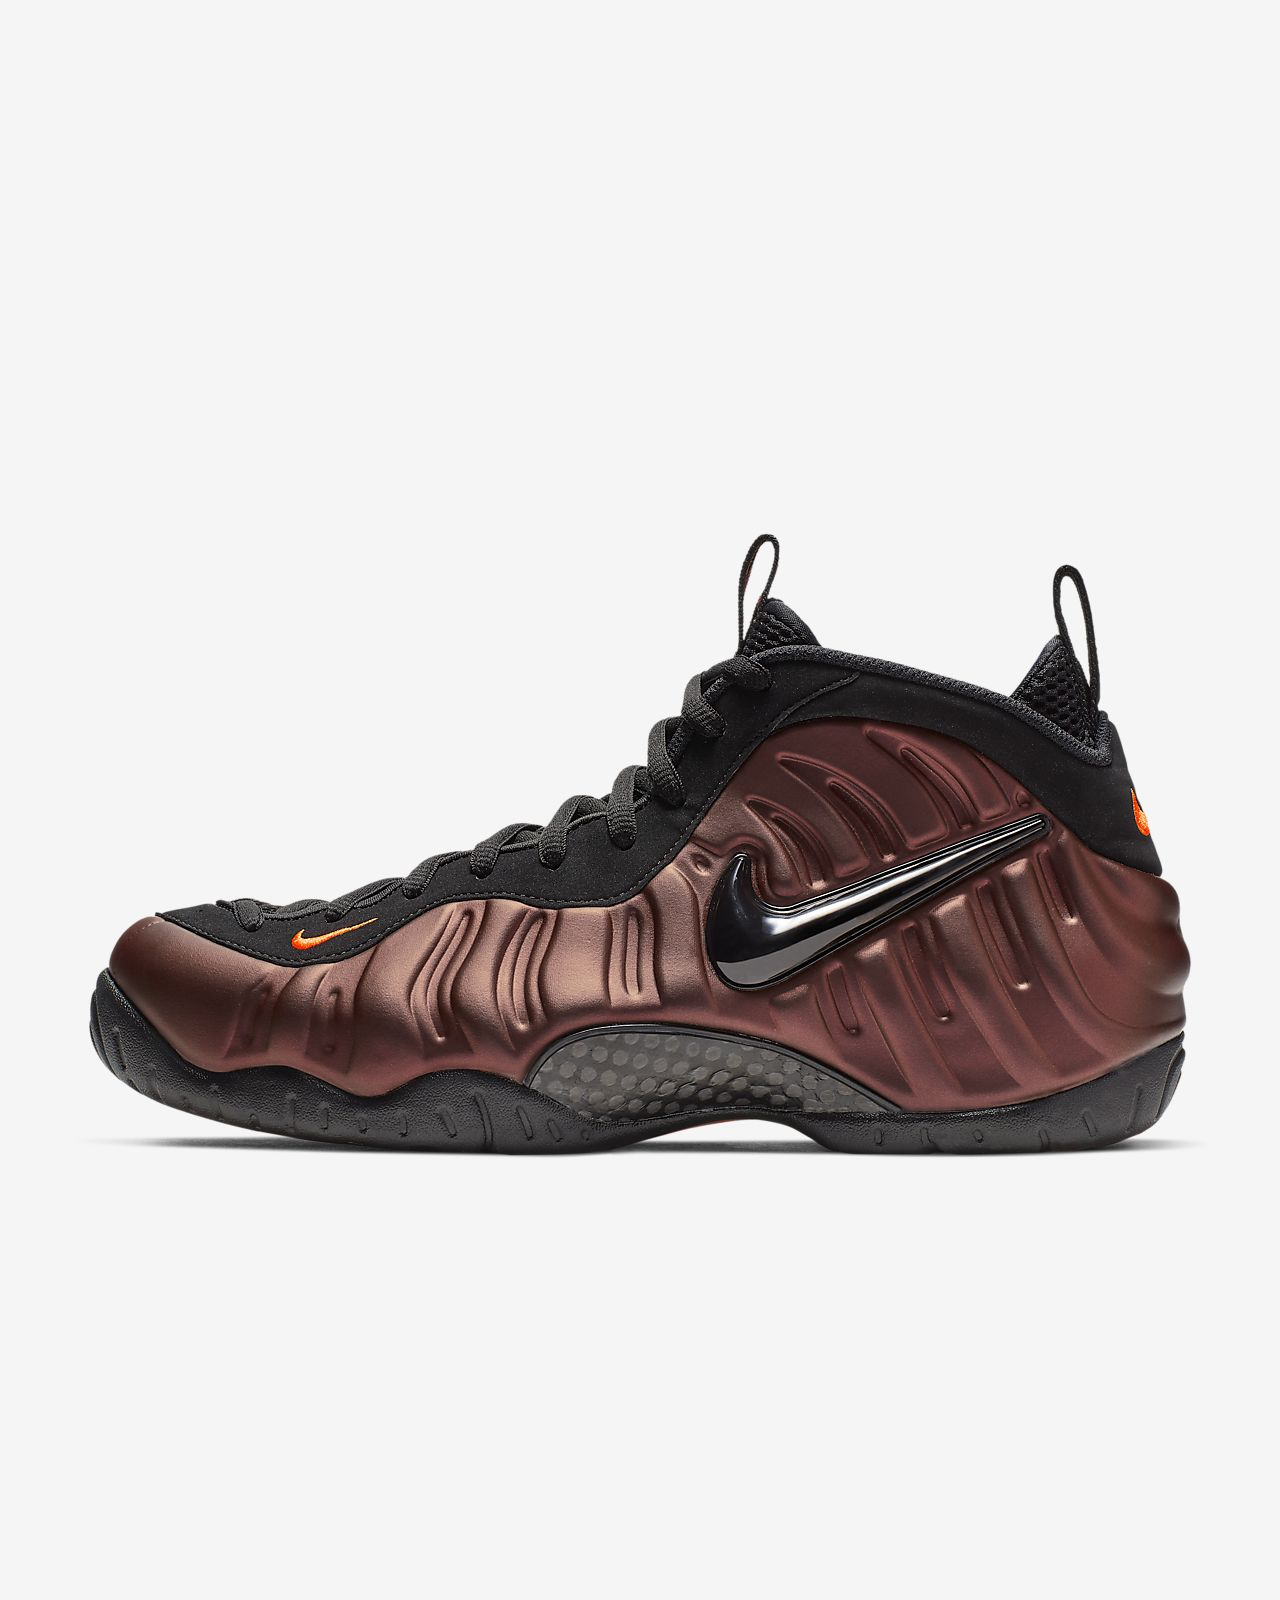 52b70c449ed63 Nike Air Foamposite Pro Men s Shoe. Nike.com